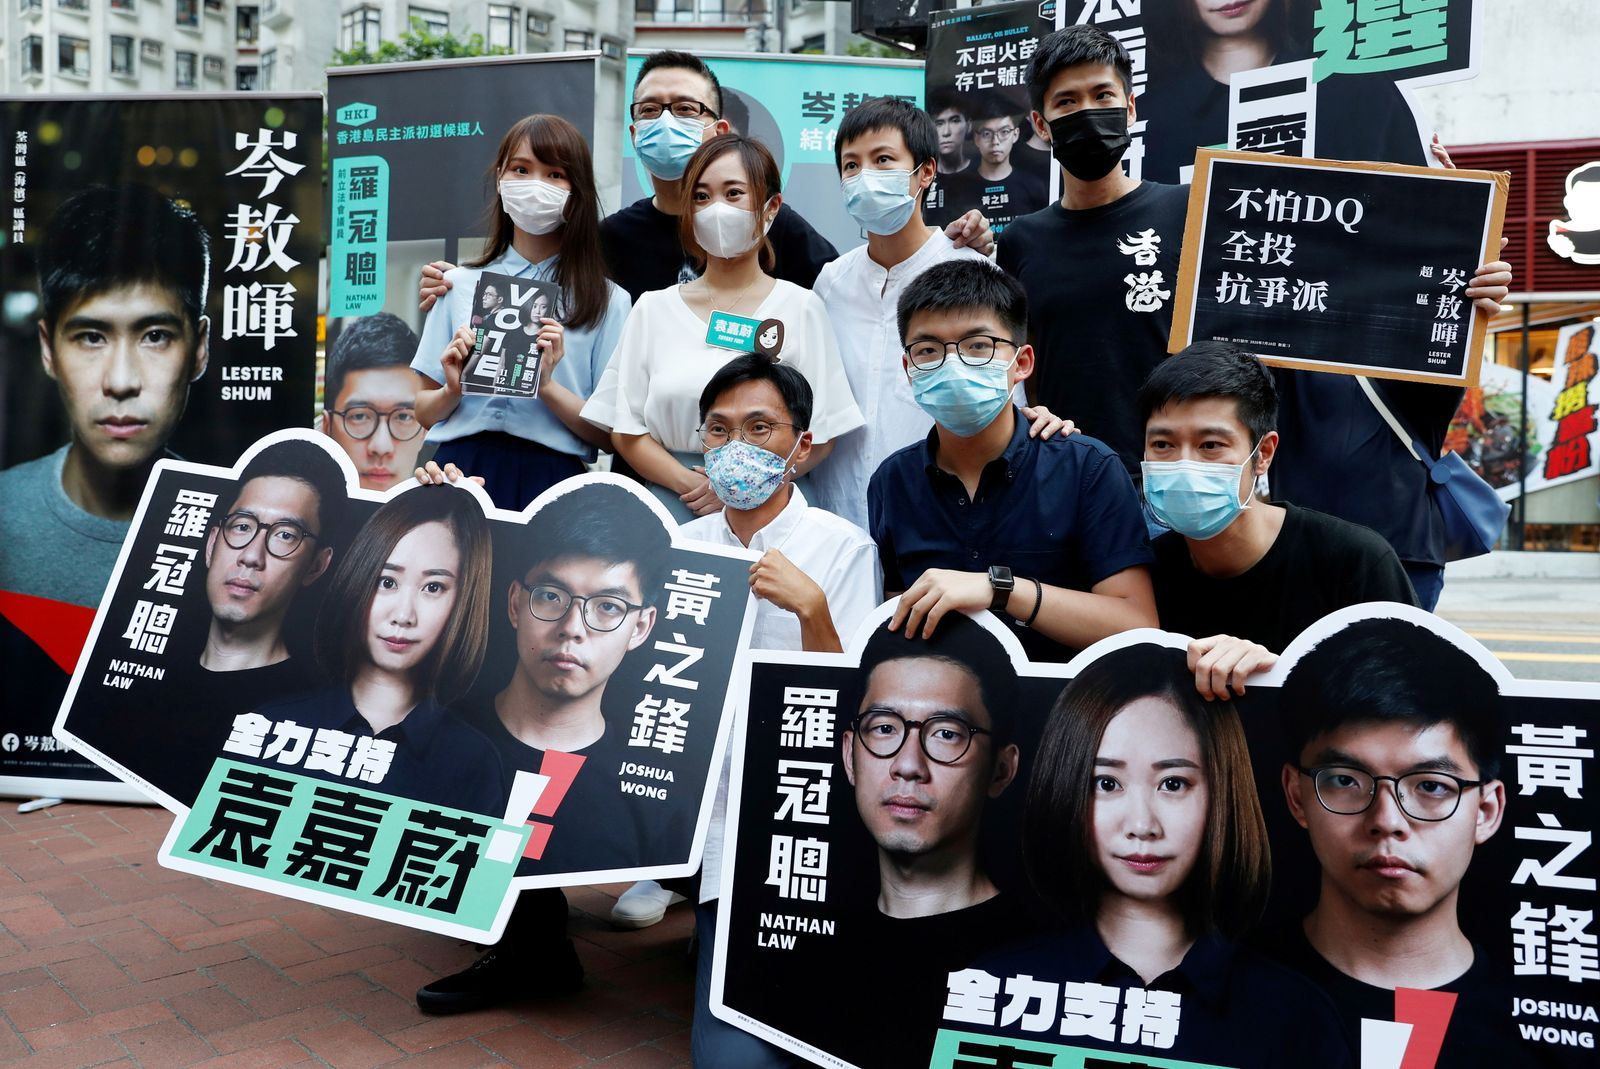 FILE PHOTO: Agnes Chow, Anthony Wong Yiu Ming, Tiffany Yuen Ka-wai, Denise Ho Wan See, Lester Shum, Eddie Chu, Joshua Wong and Gregory Wong pose for photo at a campaigning during primary elections aimed for selecting democracy candidates, in Hong Kong